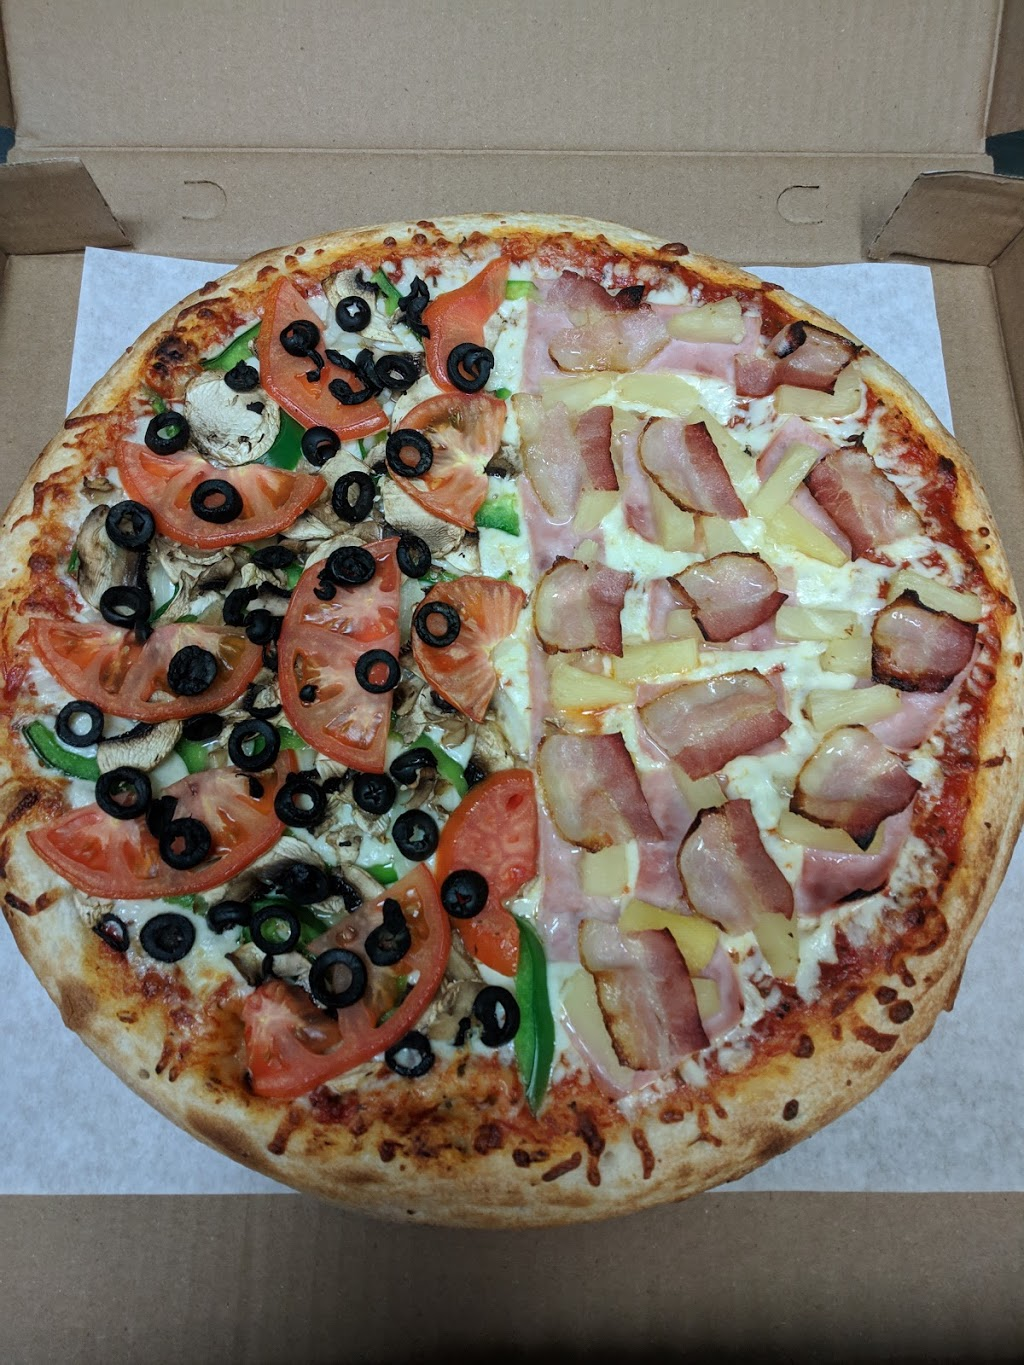 Peters Pizza & Golden Foods Ltd | restaurant | 22 OLeary Ave, St. Johns, NL A1B 2C7, Canada | 7097388888 OR +1 709-738-8888